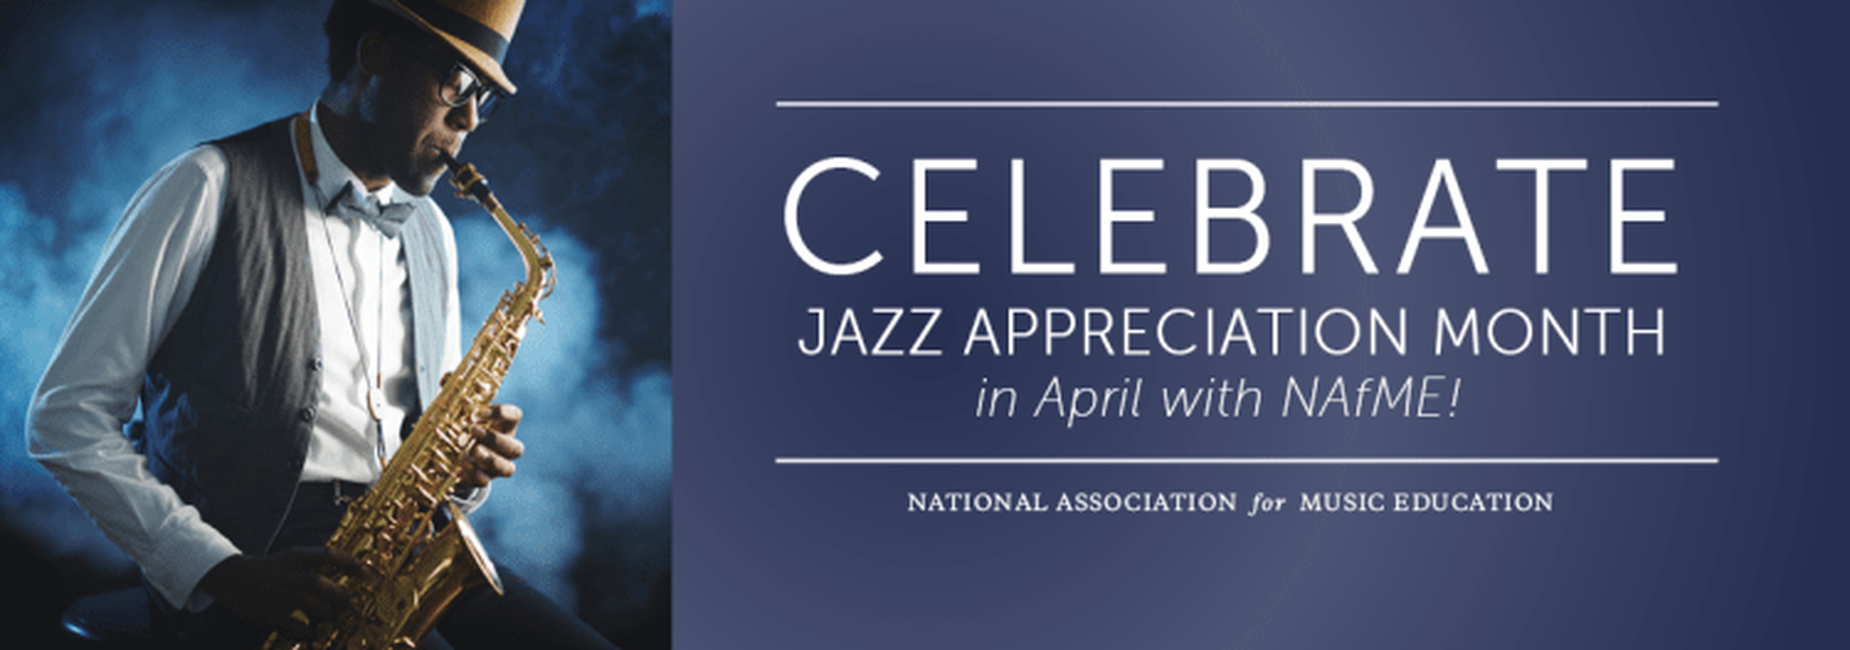 a graphic that promotes Celebrating Jazz Appreciation Month, April